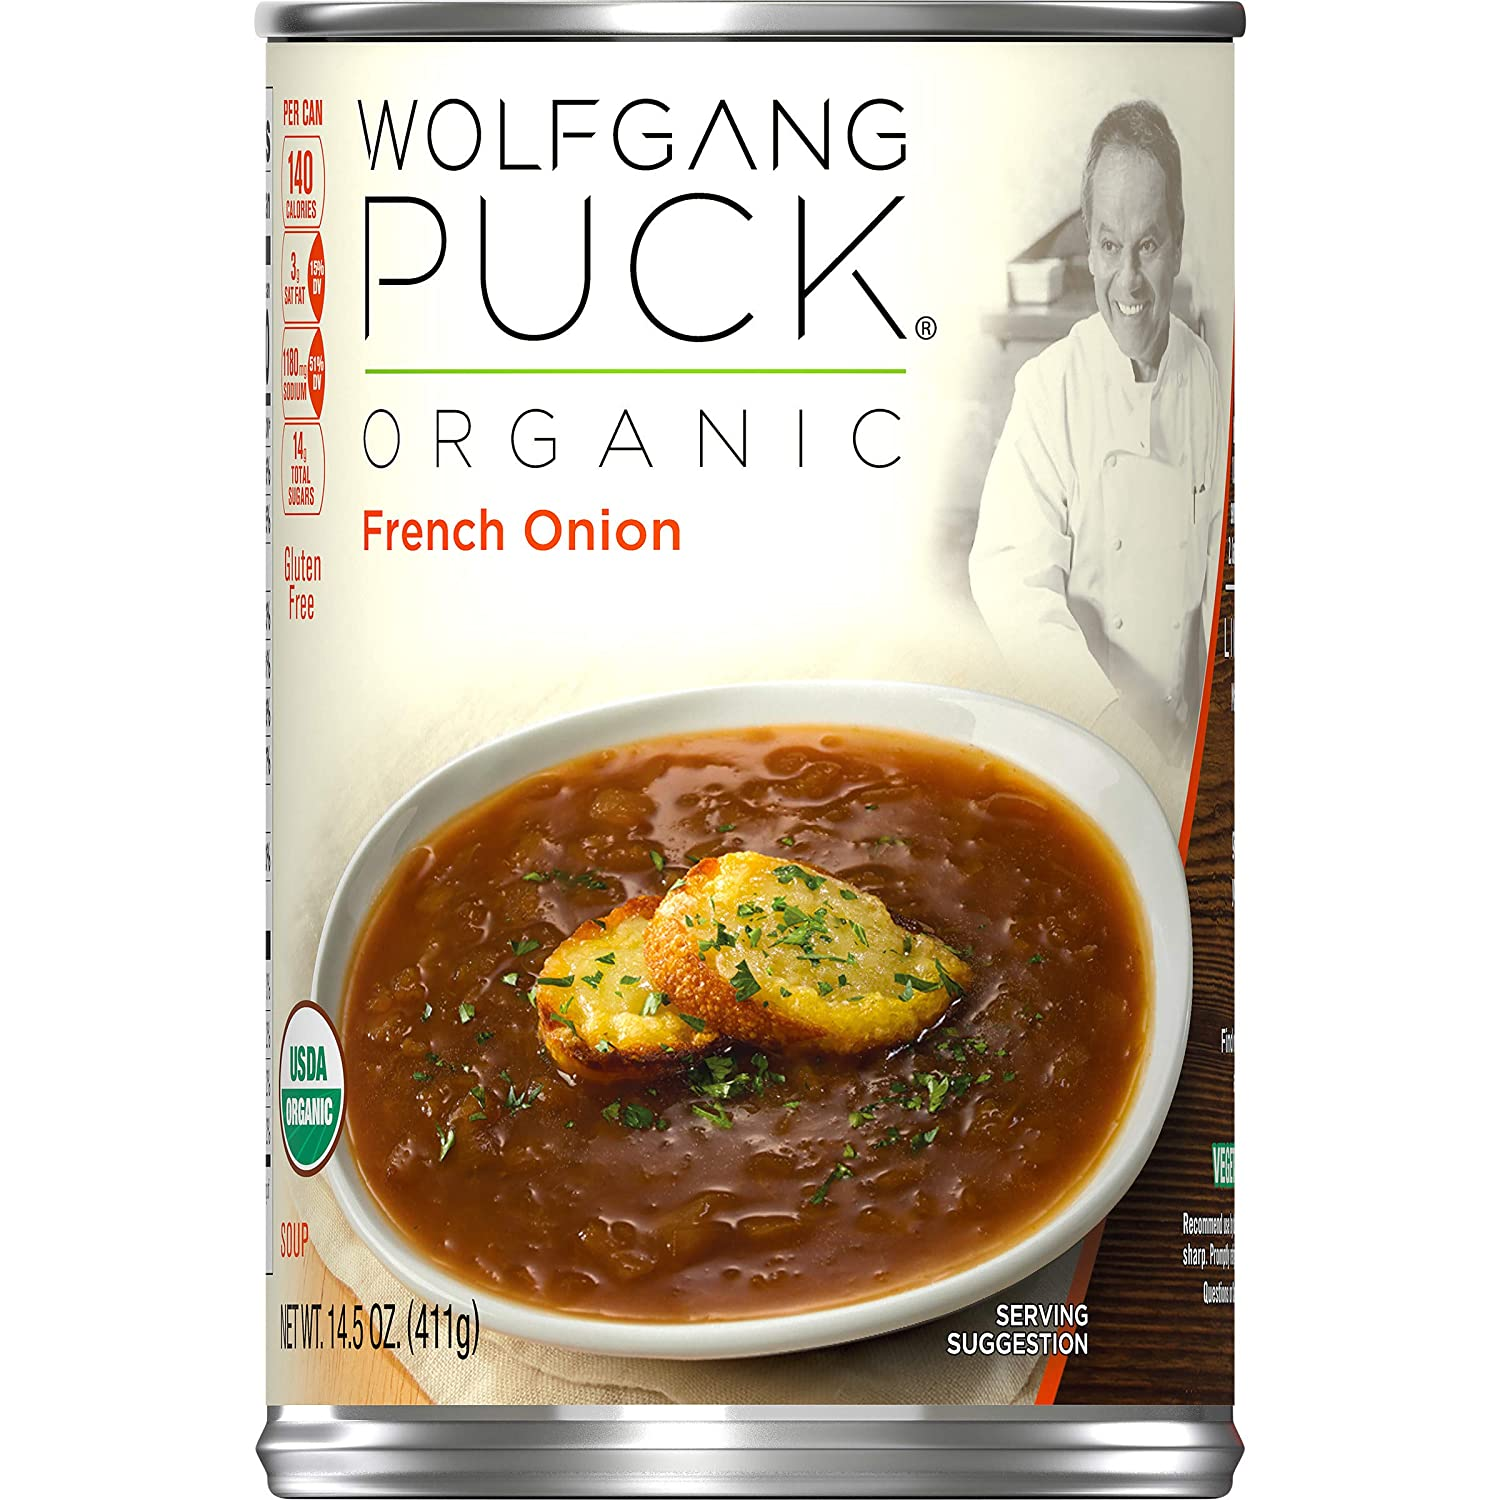 Wolfgang Puck Organic French Onion Soup, 14.5 oz. Can (Pack of 12)